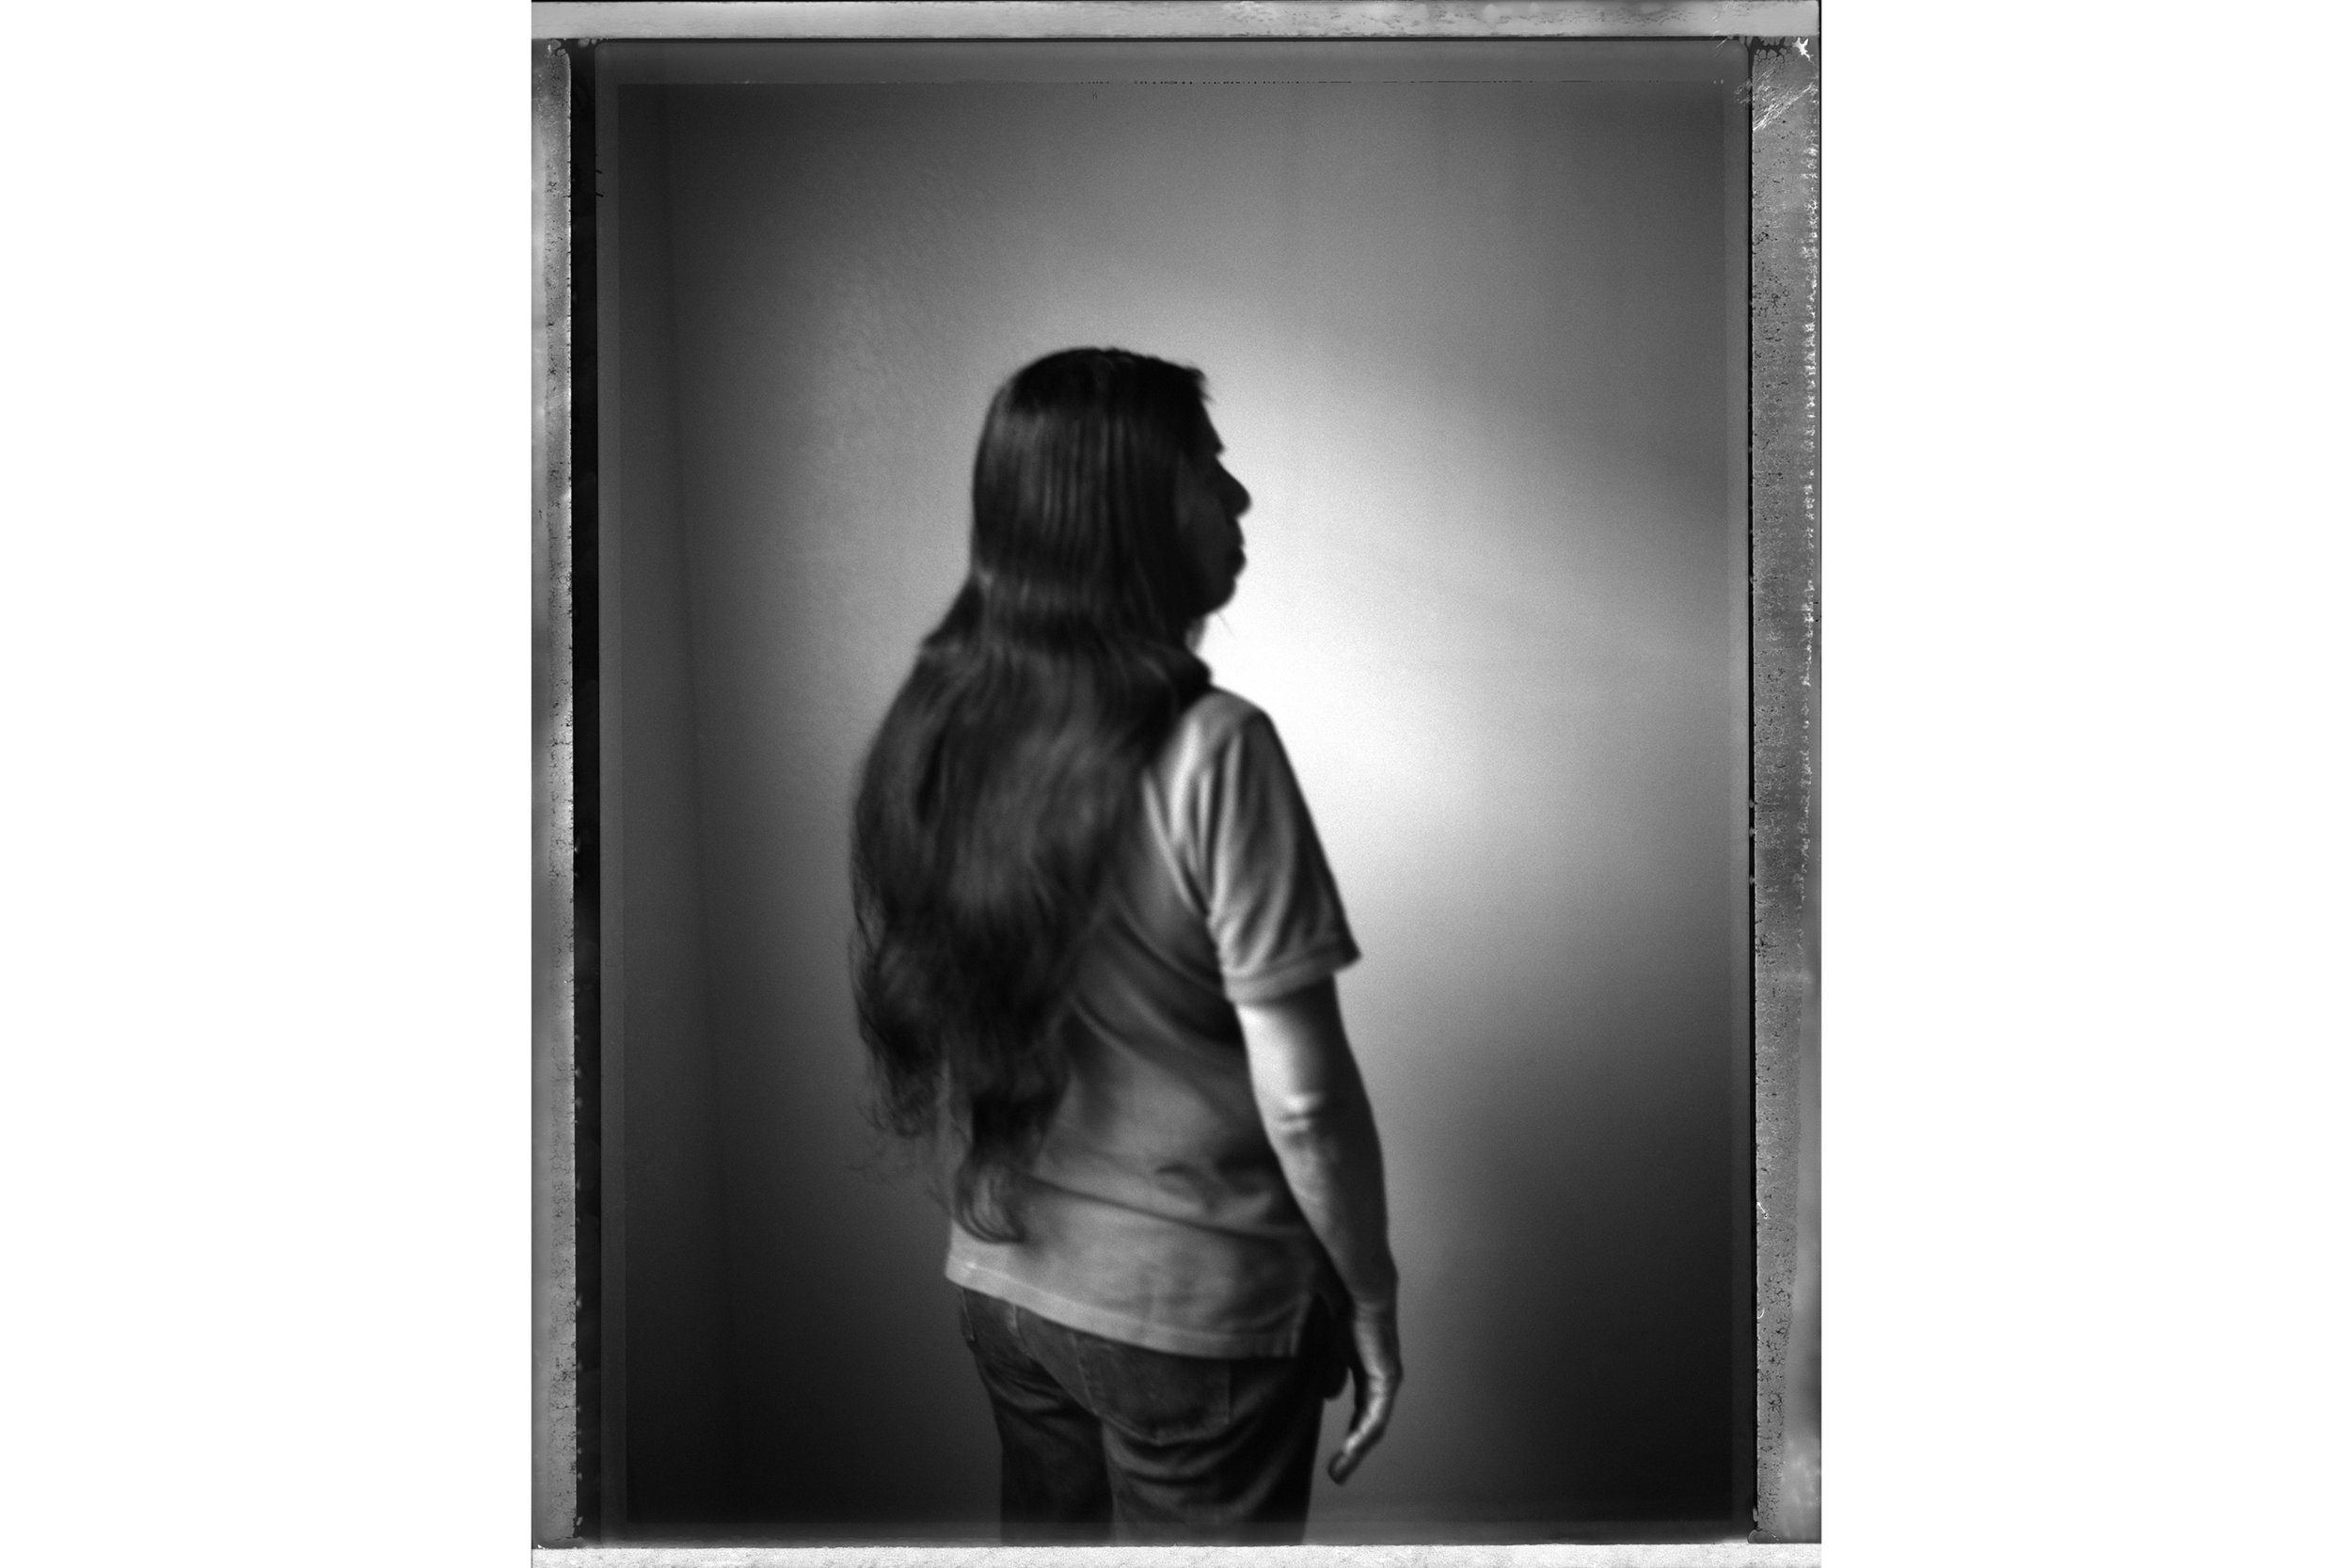 Photographs of victims of forced labor in the United States. Adela Lopez' family?s they paid in excess of 140,000 Guatemalan Quetzales or about $20,000 in an effort to find a better life for her family. As is often the case the victims are seduced by someone familiar to them who they trust.In a nightmarish scenario Adela and her family found themselves captives once inside the United States. Her daughter was referred to as ?Carne Fresca? or Fresh Meat and for more than a year they endured undue hardship at the hands of her traffickers.  All three were forced to perform domestic labor and her daughter was repeatedly raped and eventually had a son by her rapist/trafficker.They were rescued by Immigrations and Customs Enforcement and now live in the Dallas area.This project is supported by Lexis Nexis